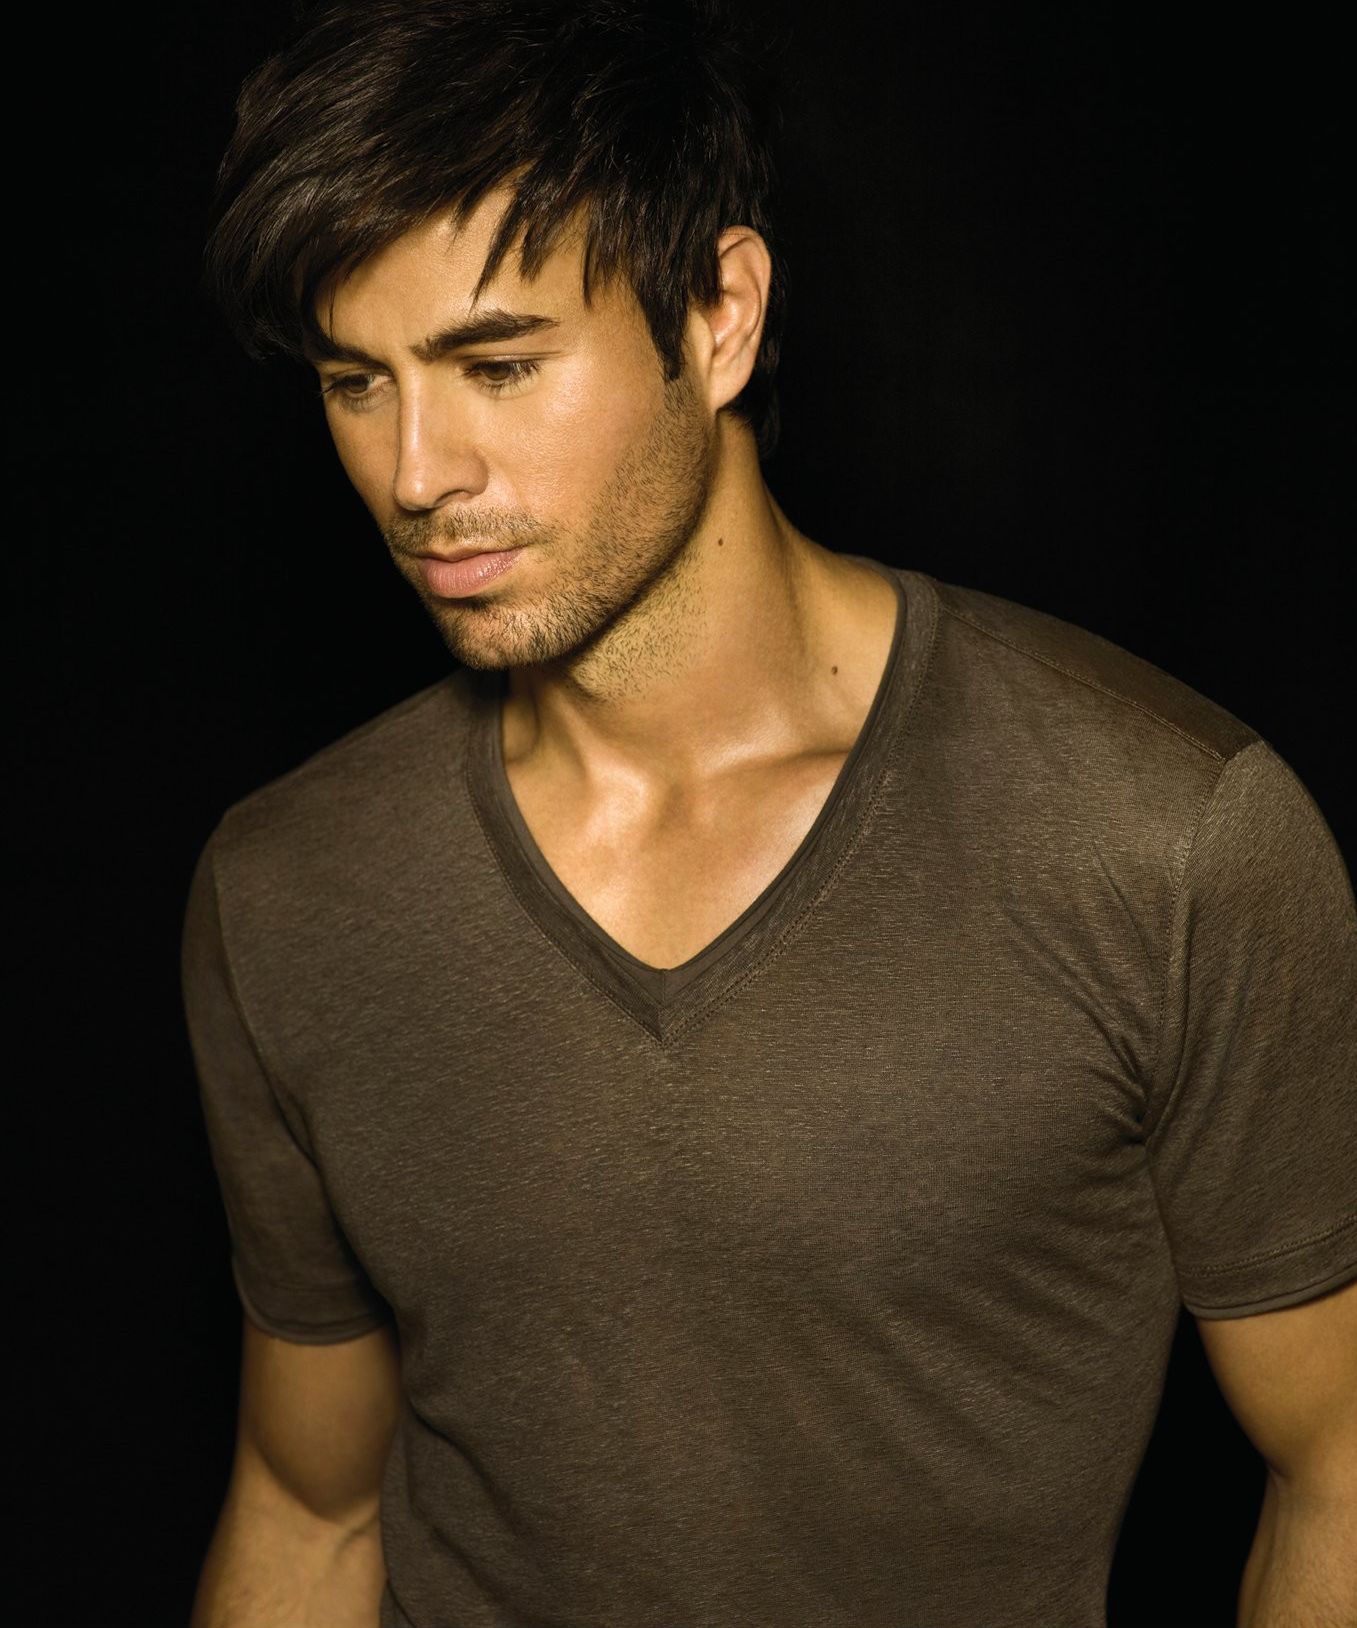 Enrique Iglesias Most Handsome Men 2018